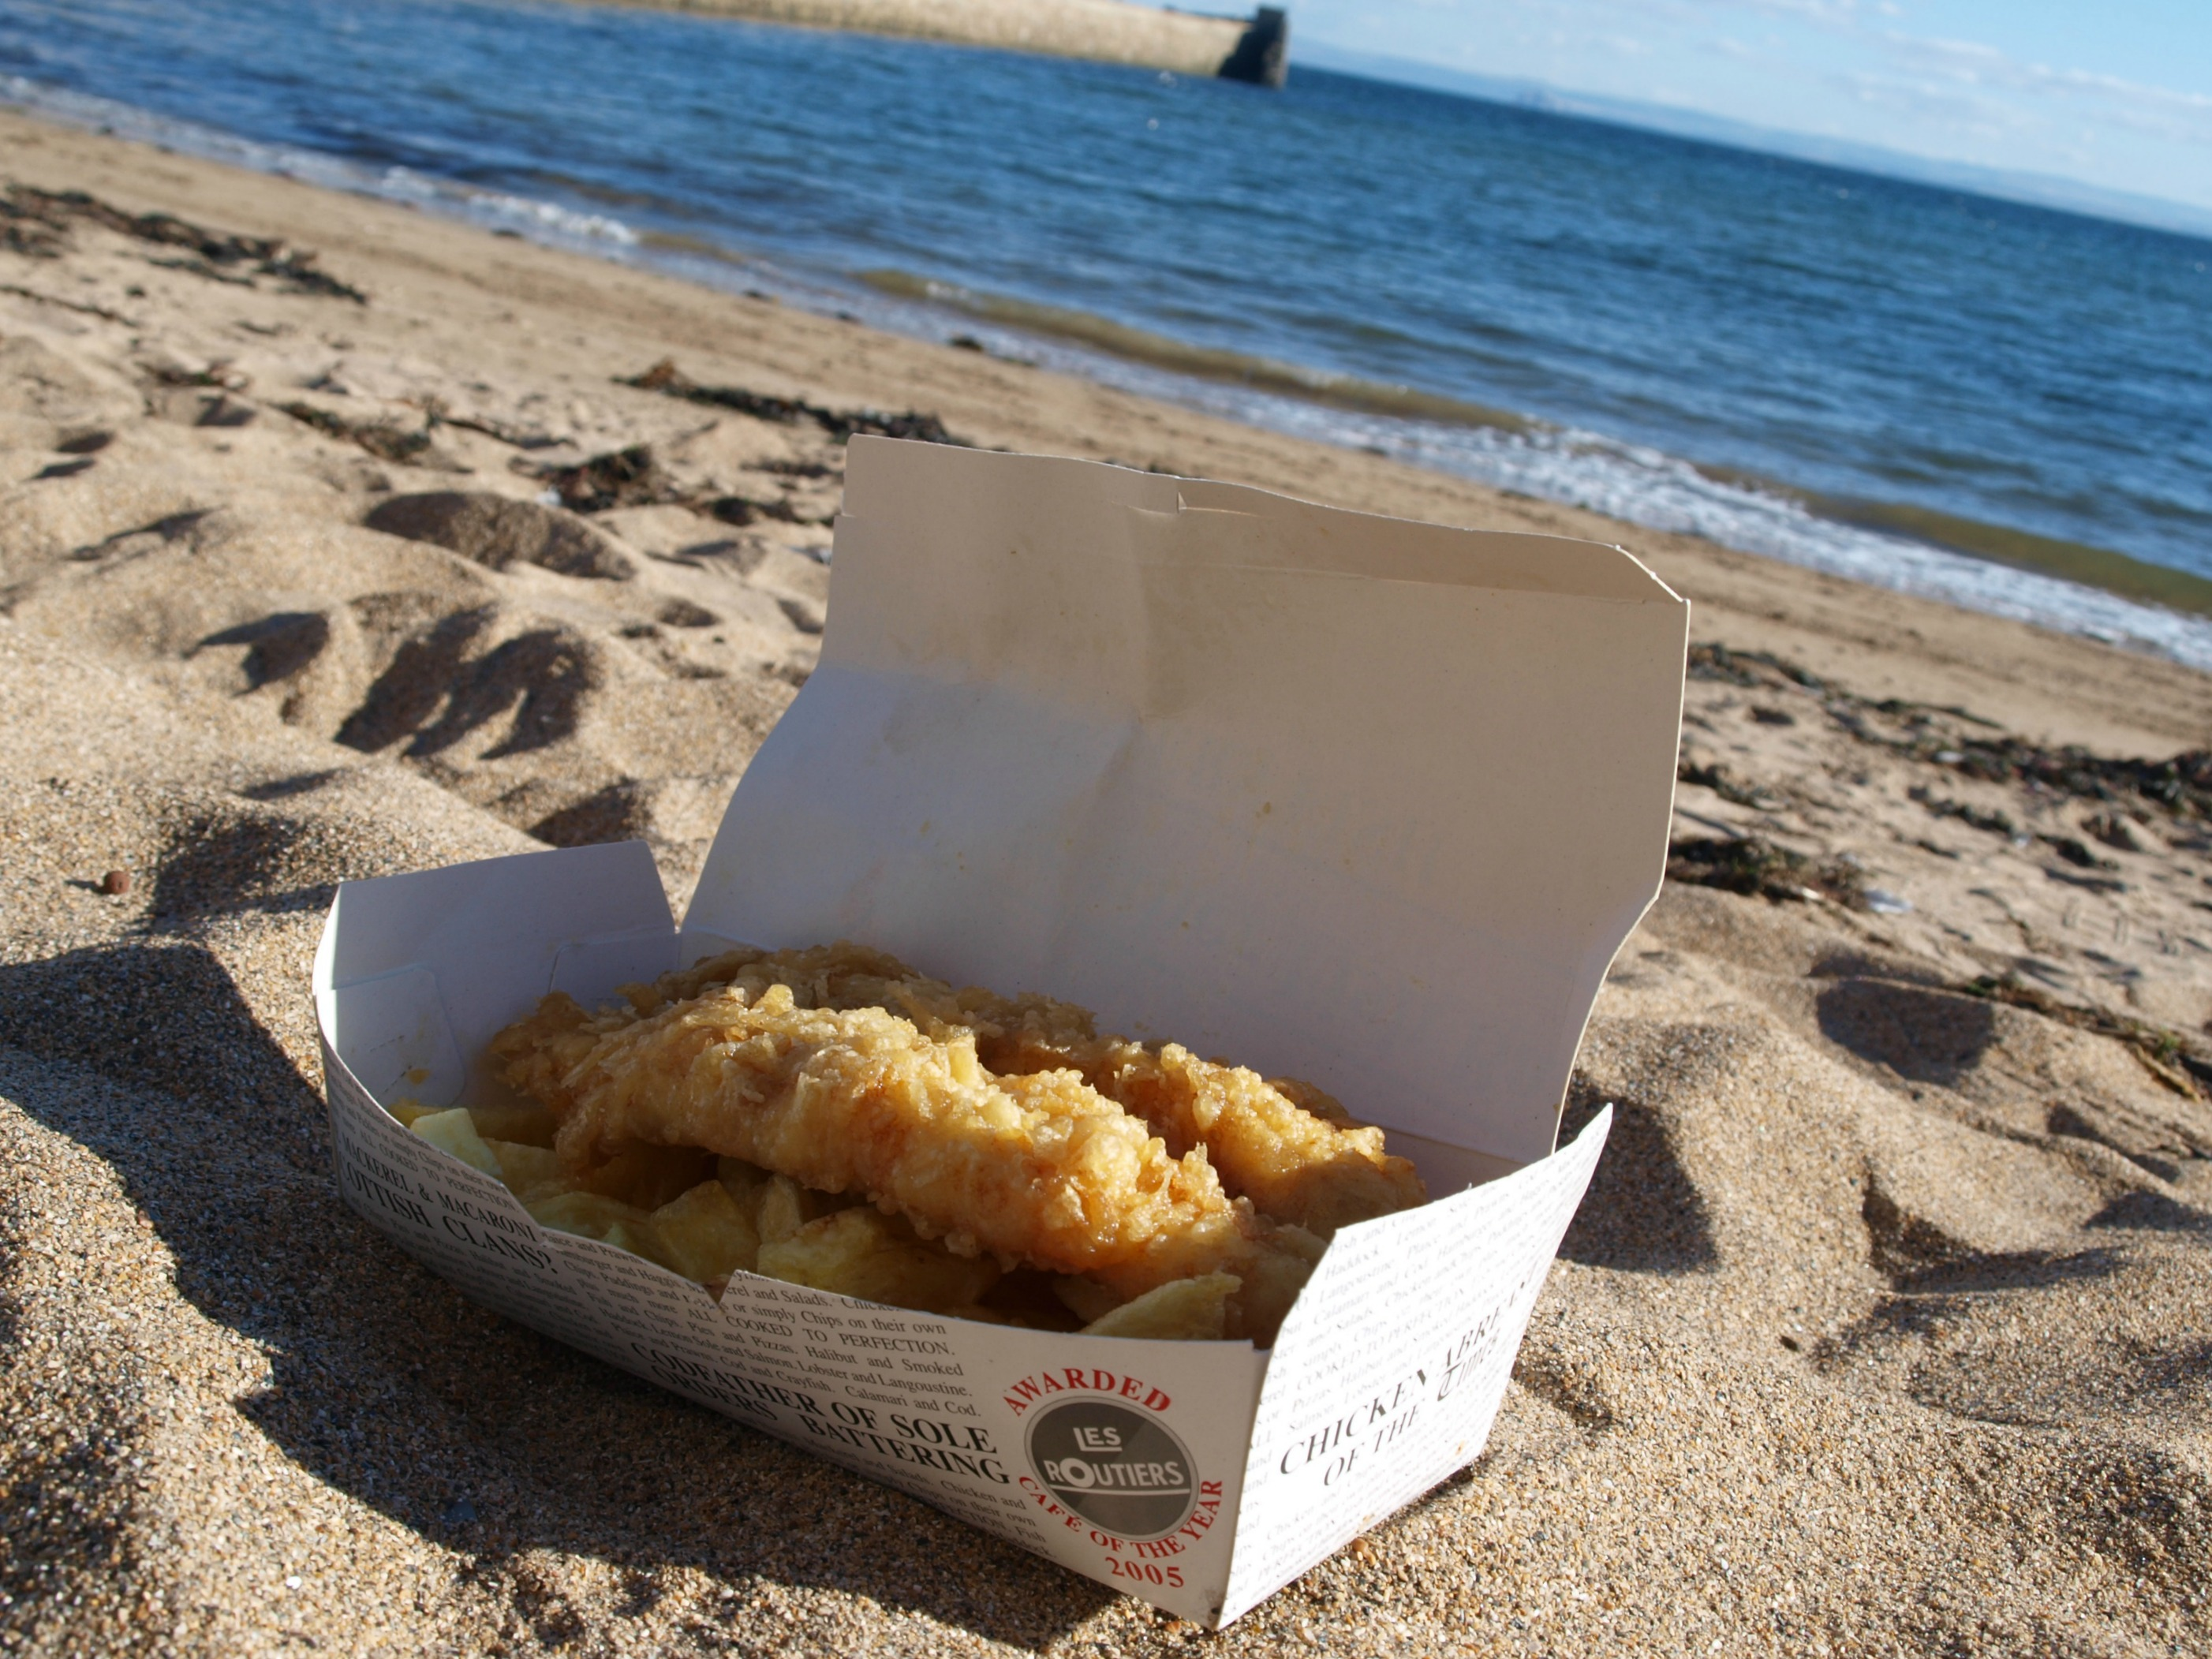 Fish and chips from the Anstruther Fish Bar